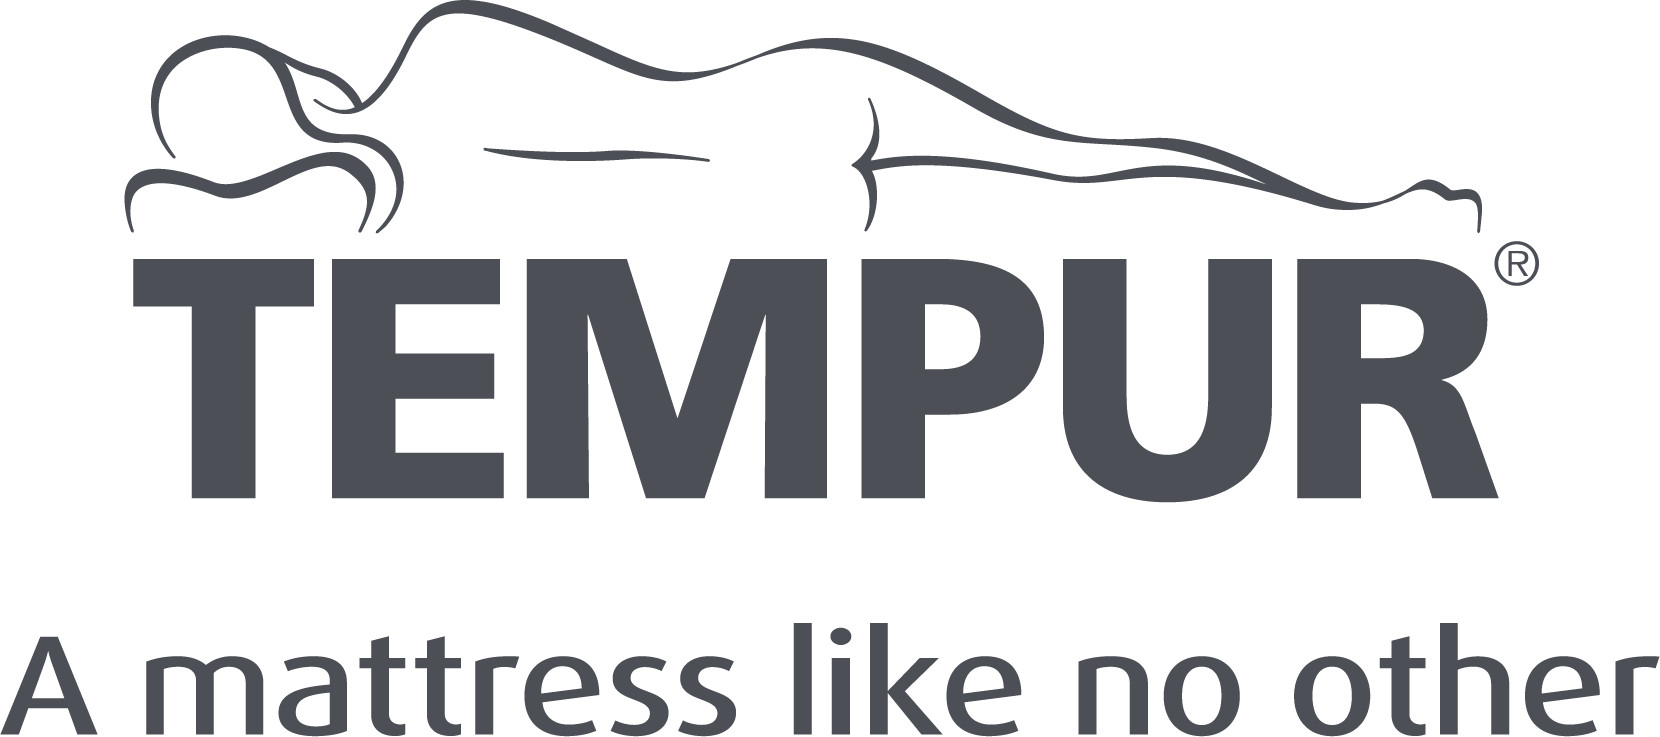 a_mattress_like_no_other_Grey_RGB_Medium Tempur logo